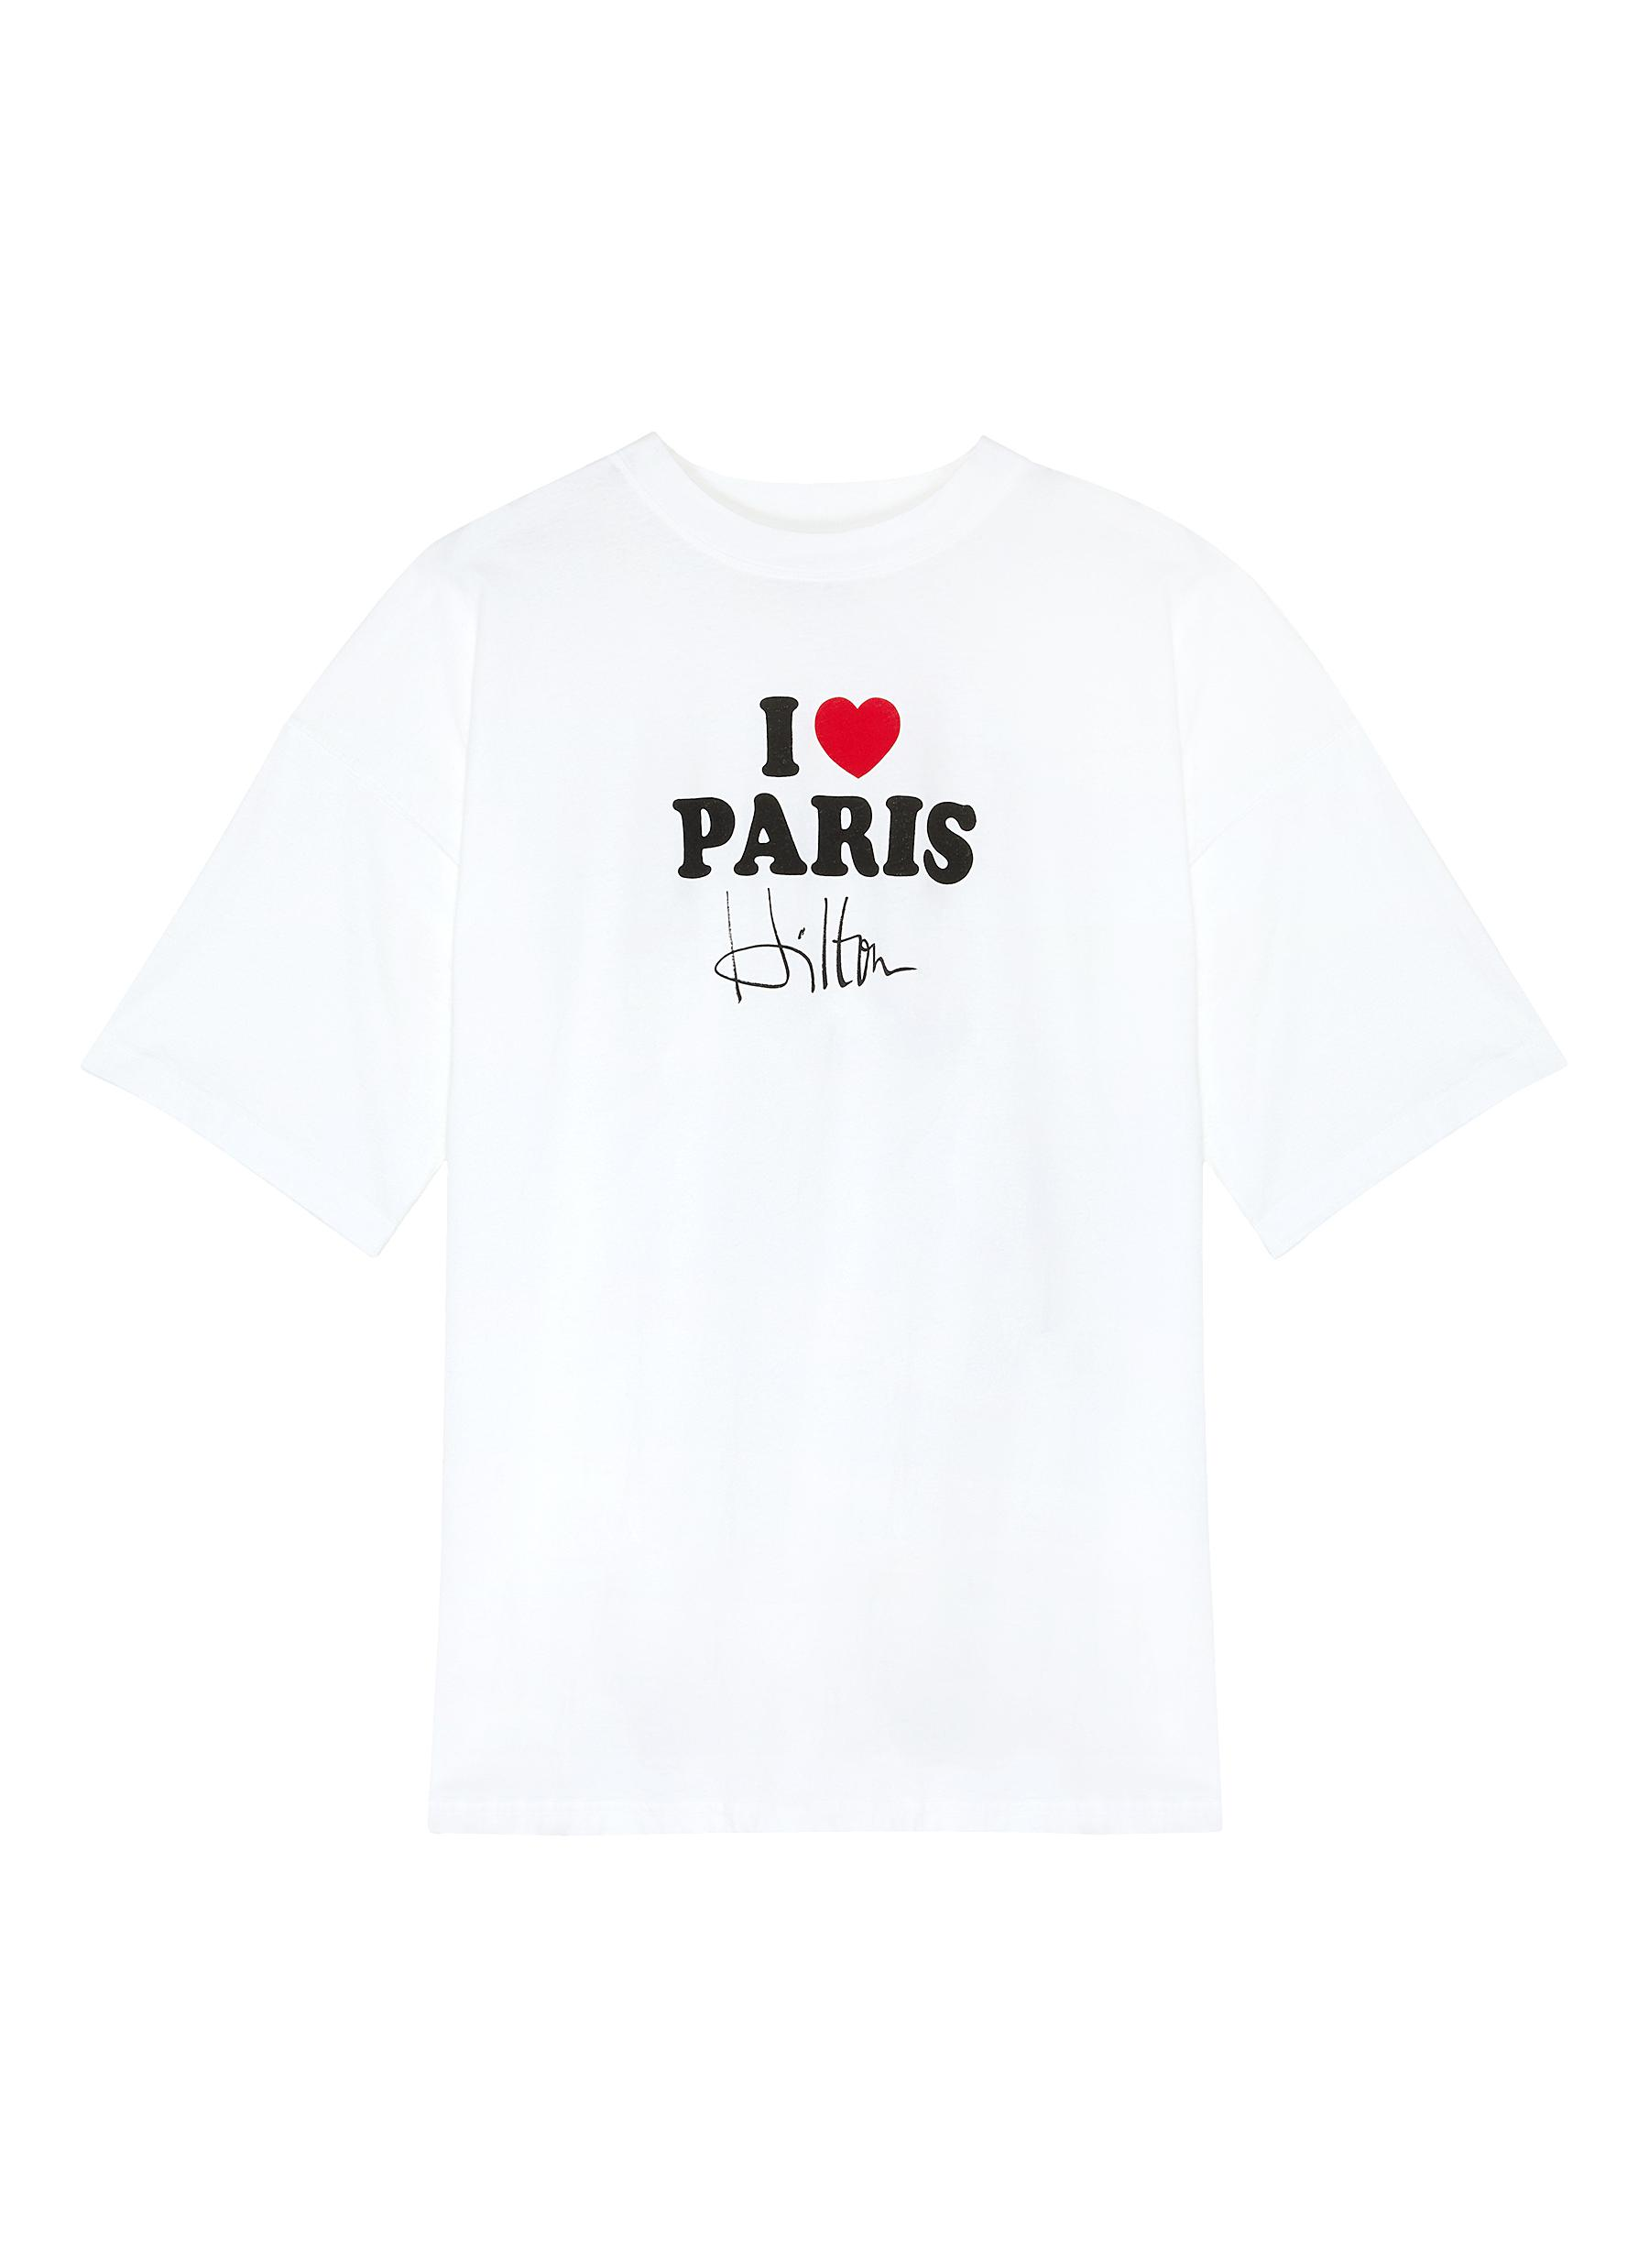 Buy Vetements Tops 'I Love Paris Hilton' slogan print T-shirt